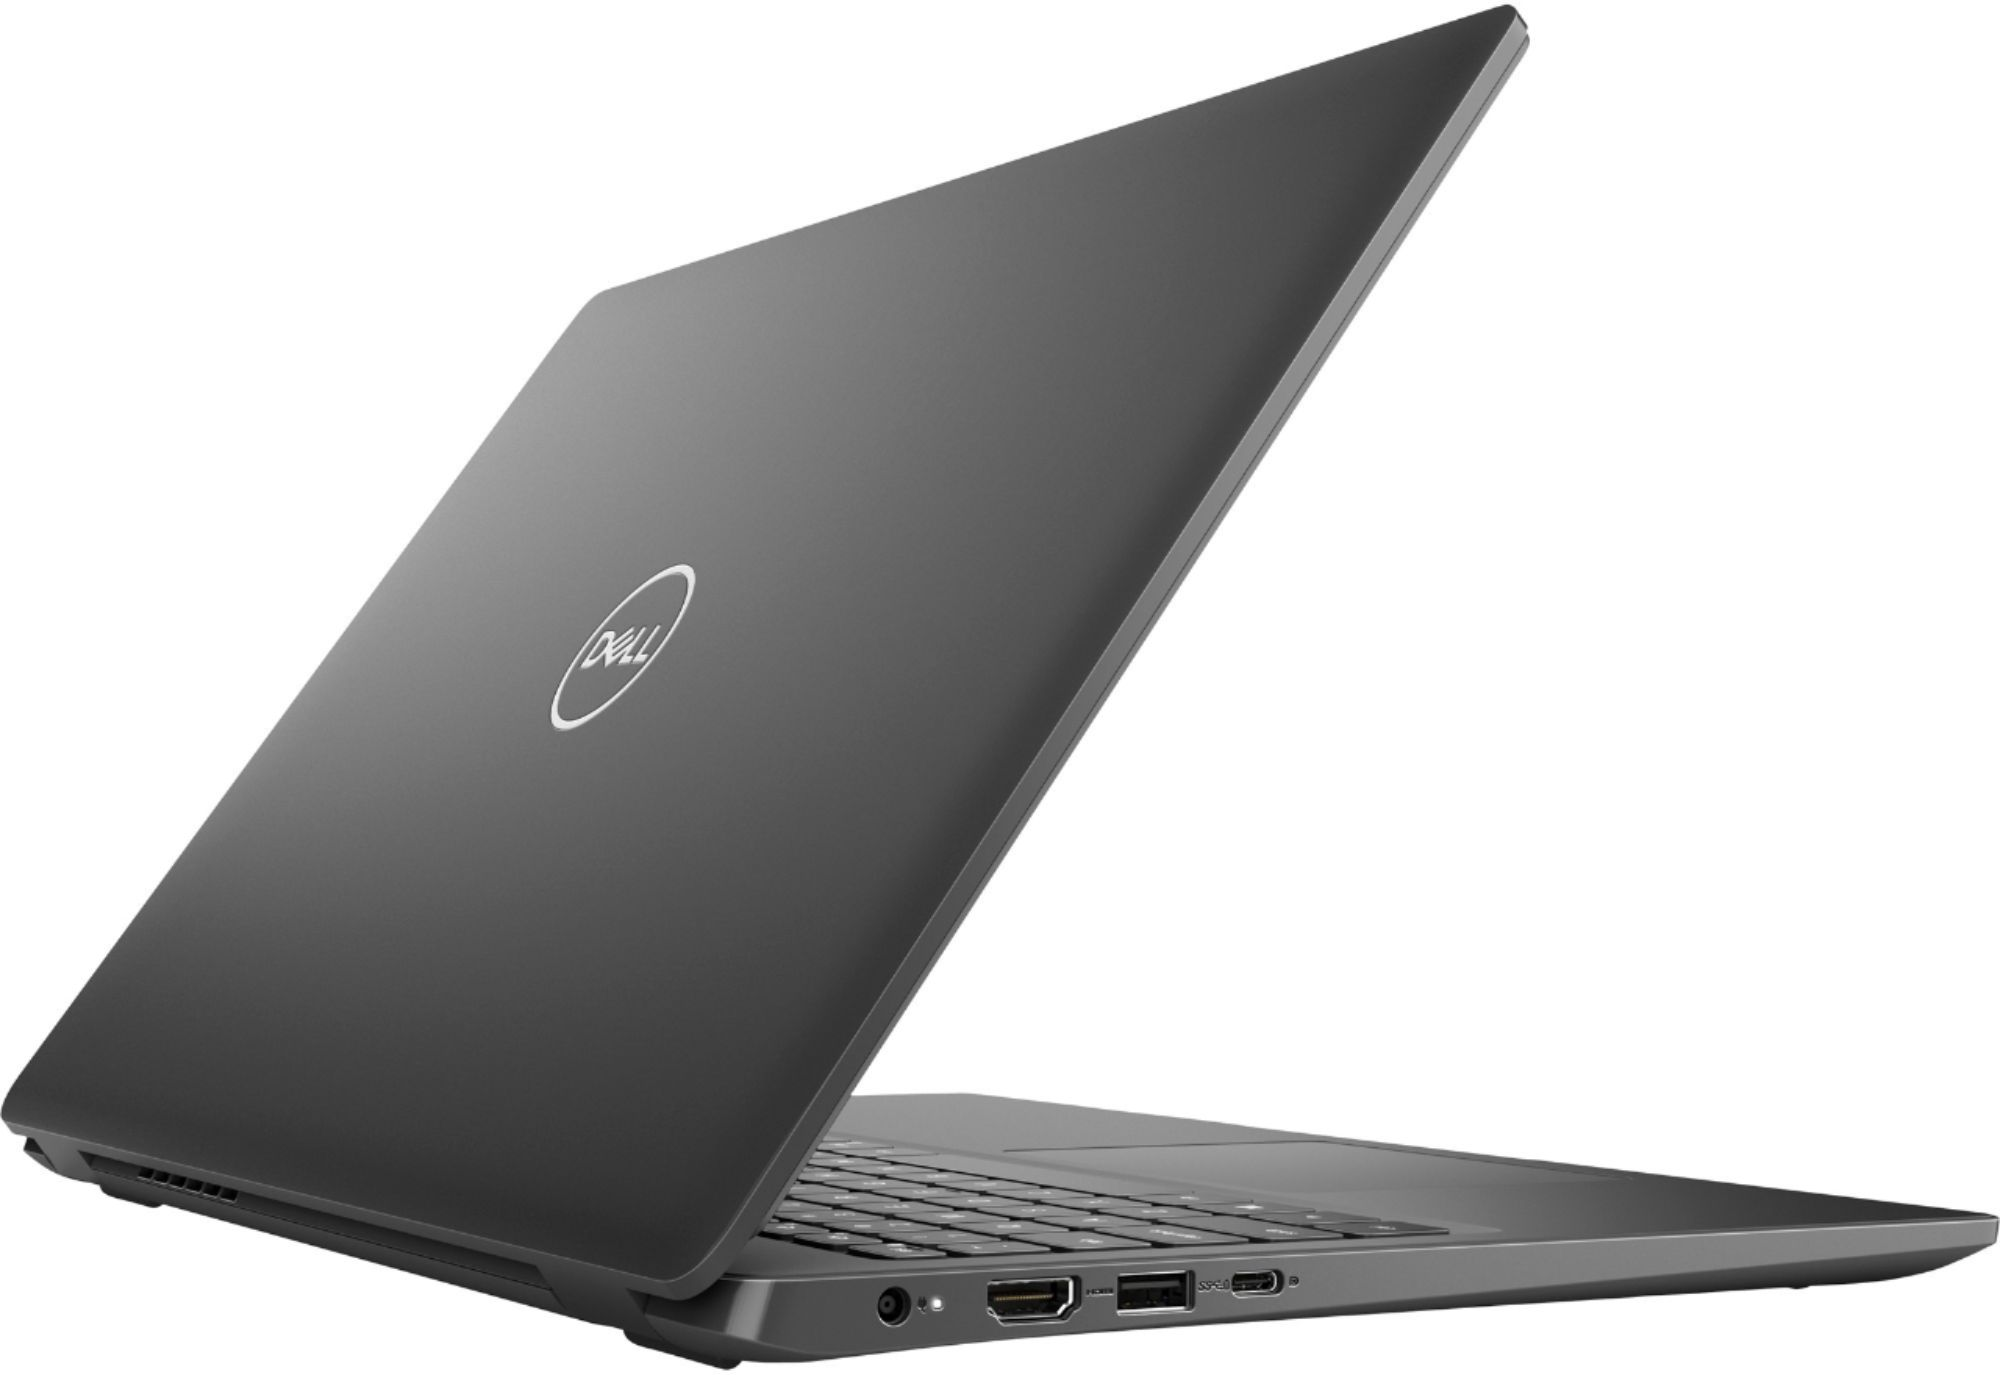 "Alt View Zoom 11. Dell - Latitude 3000 15.6"" Laptop - Intel Core i5 - 8 GB Memory - 500 GB HDD - Gray."